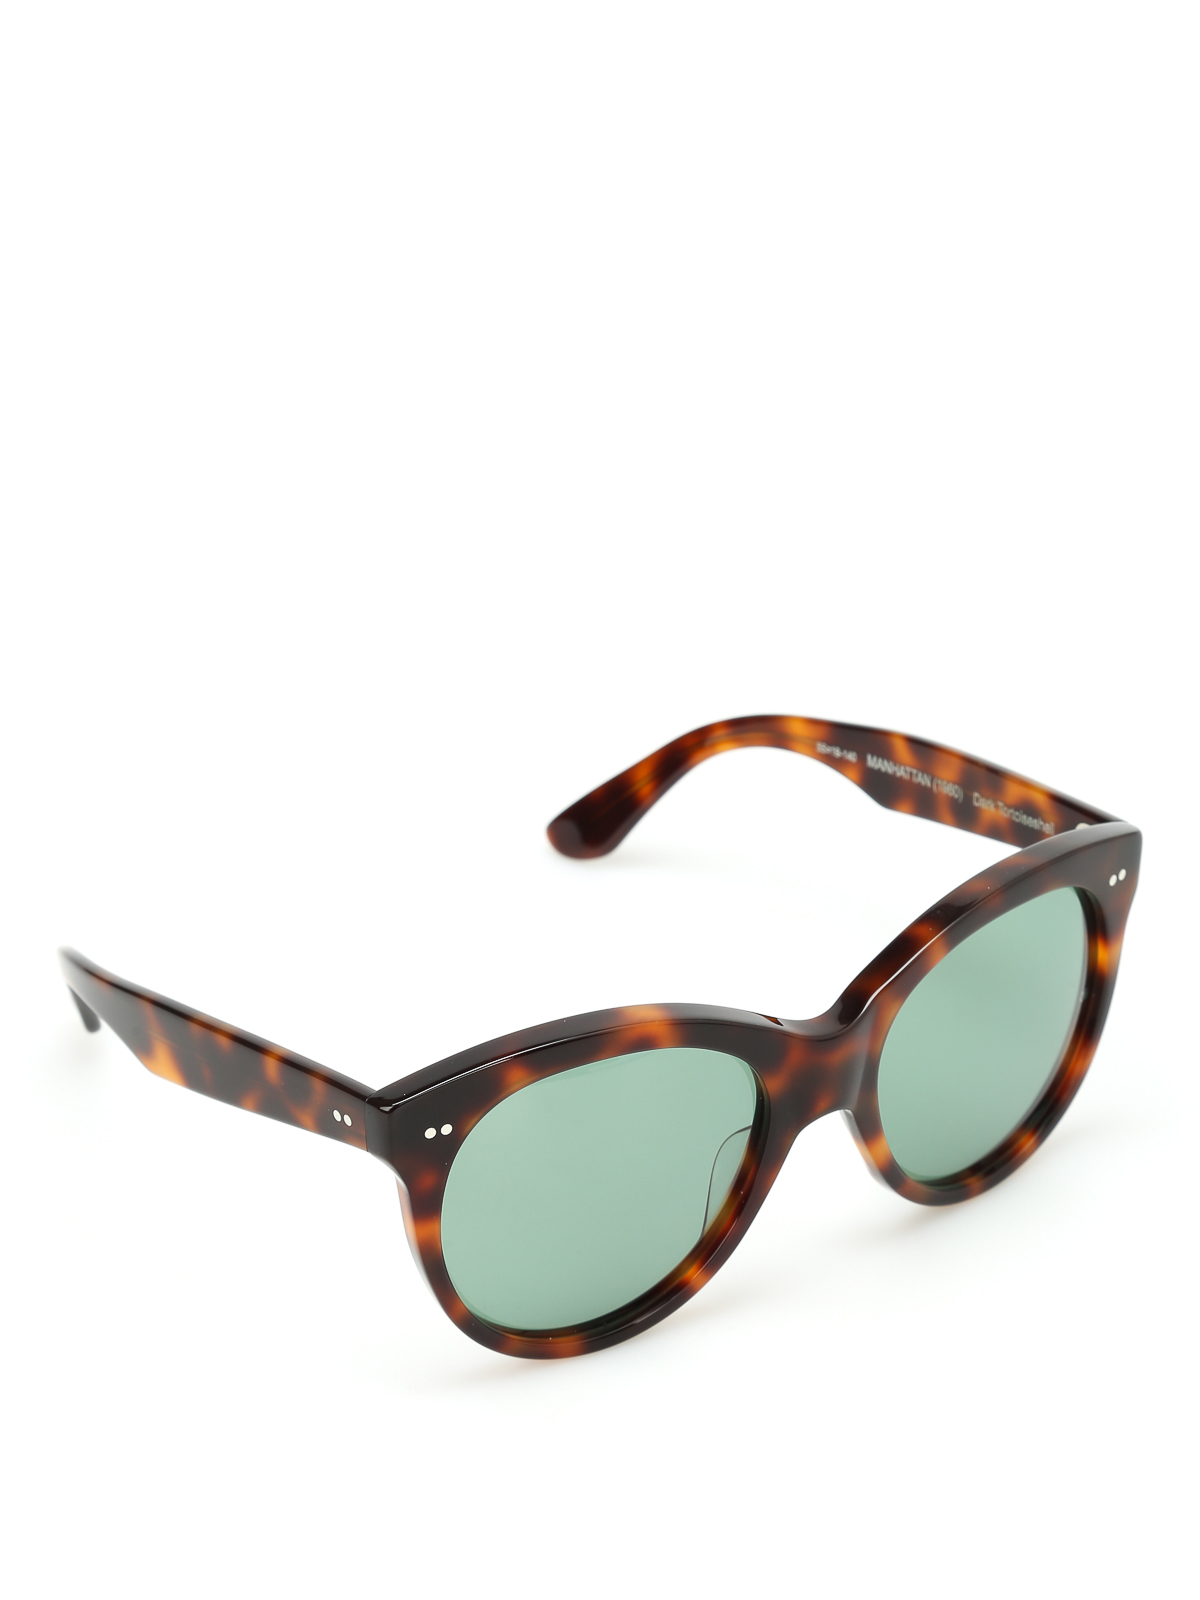 OLIVER GOLDSMITH Cat eye sunglasses lt2sAD5